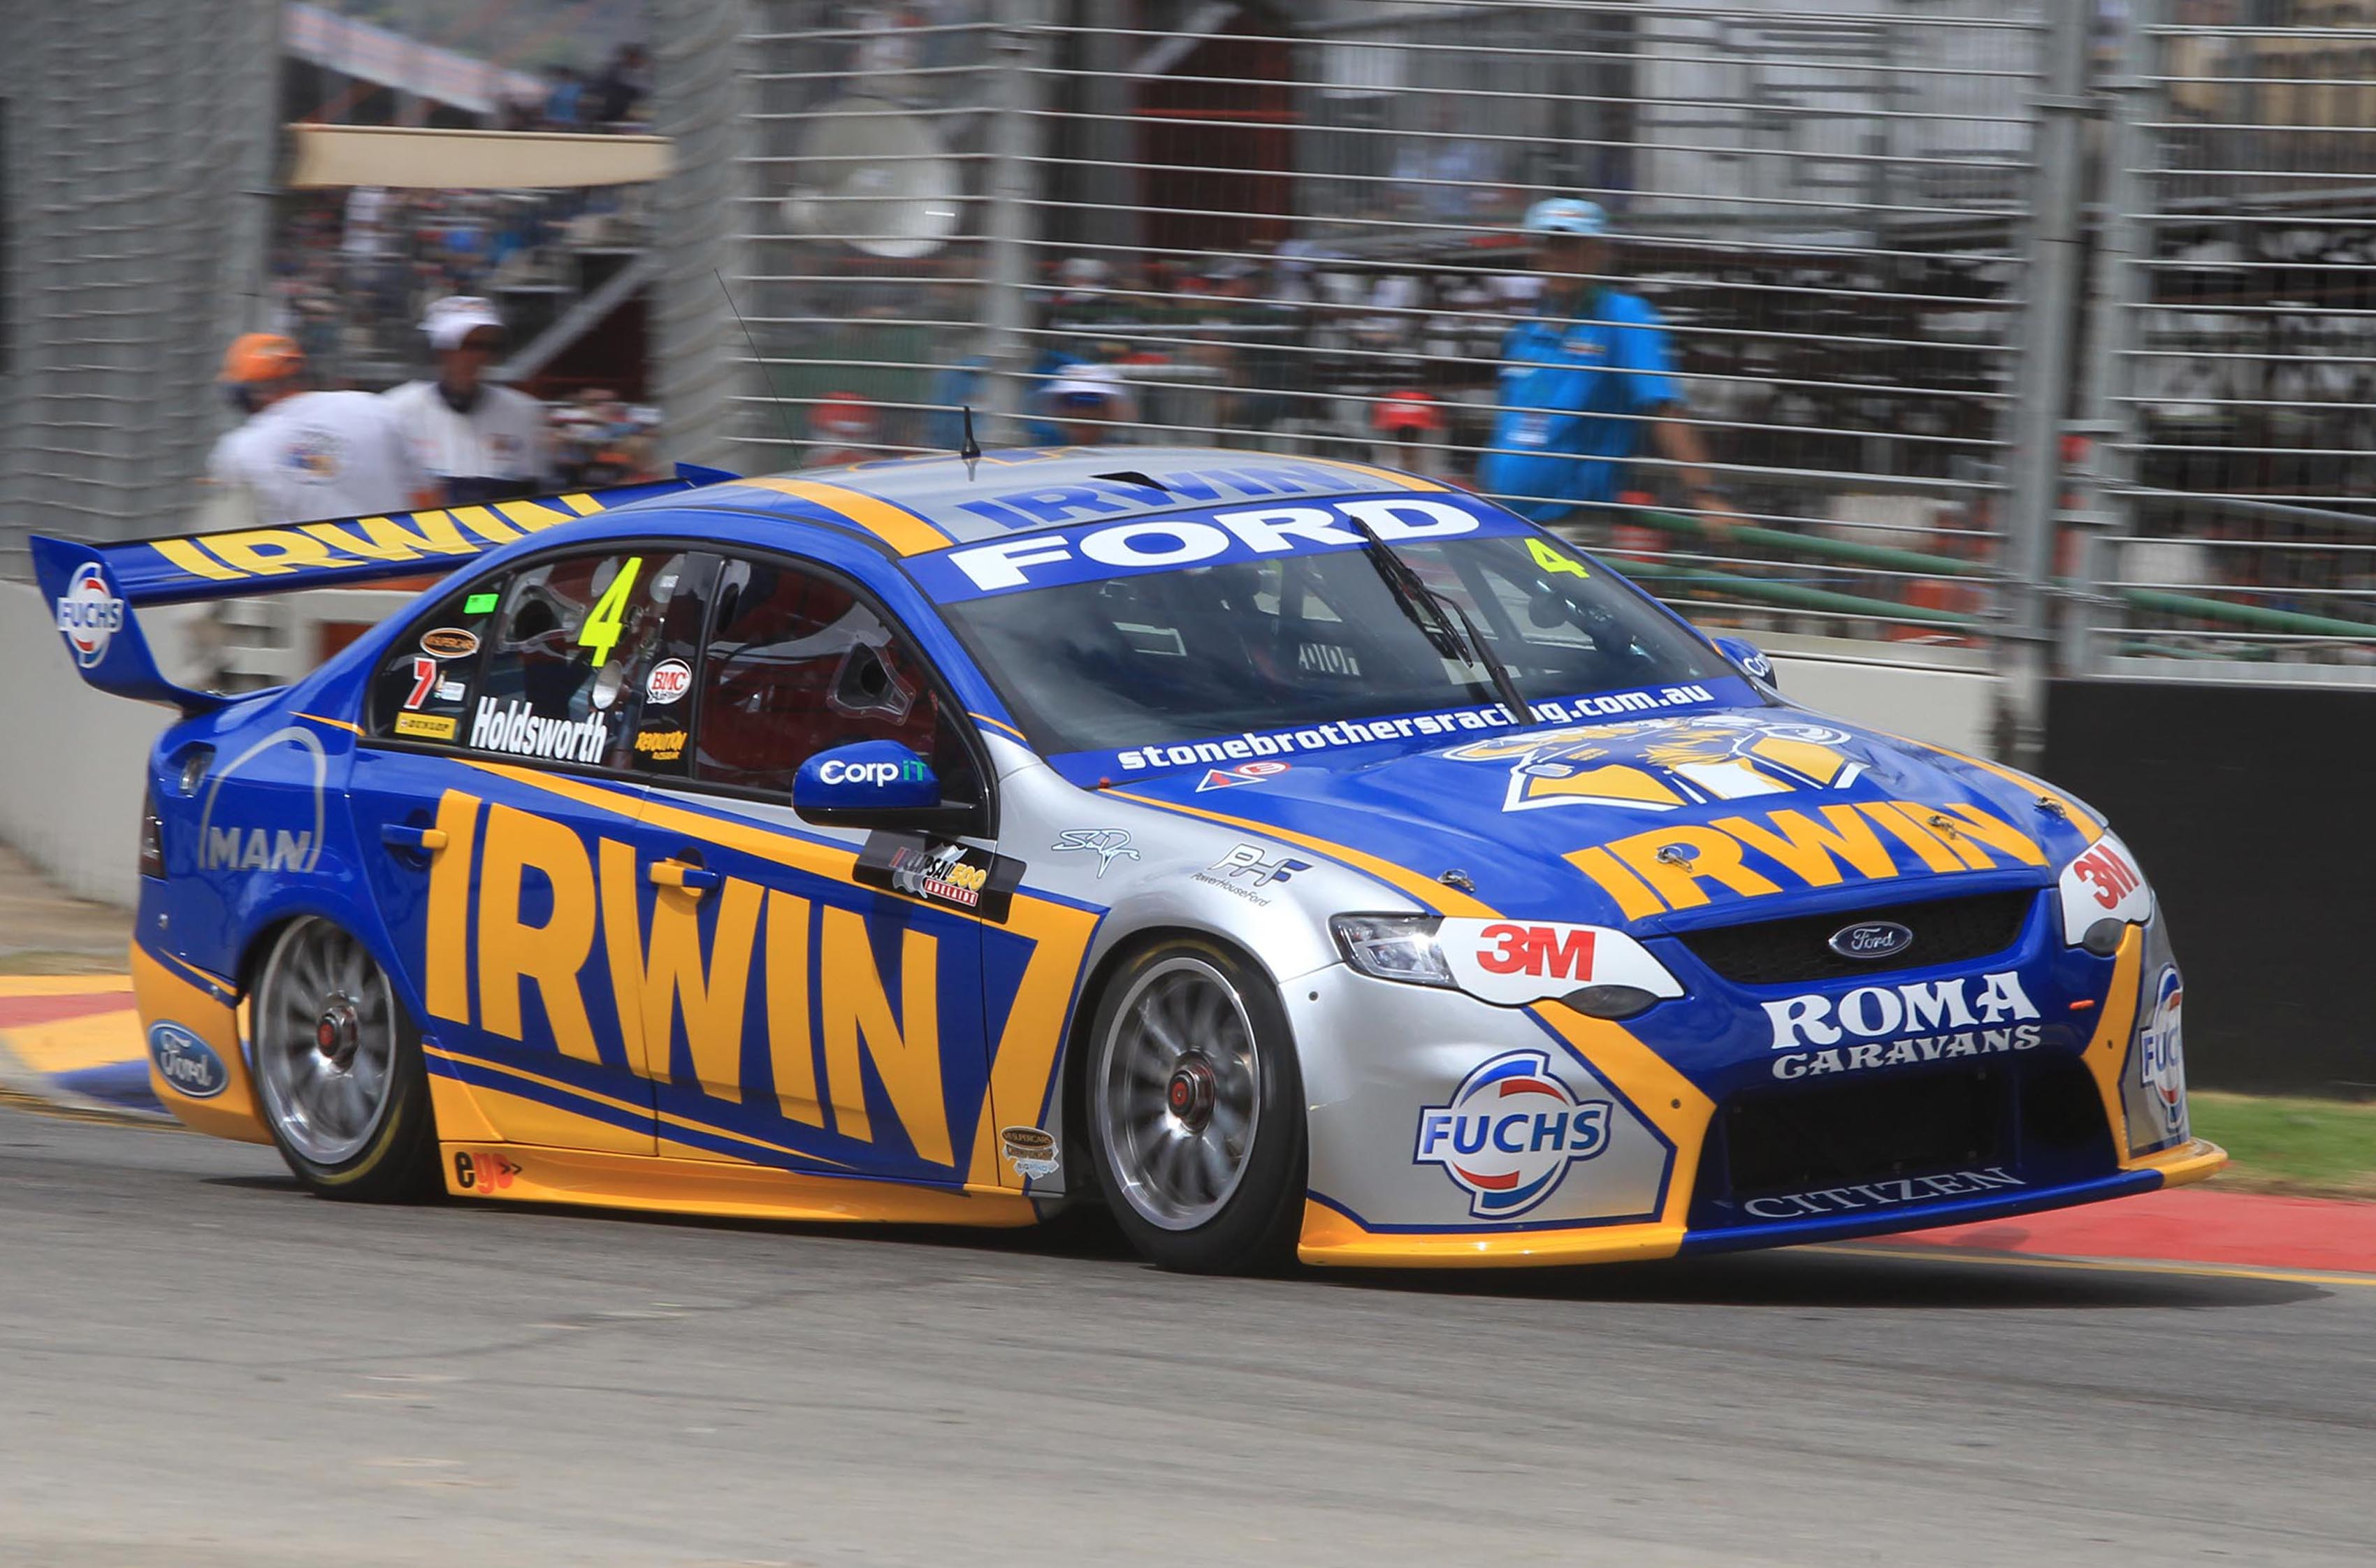 V8 Supercars Wallpapers HD Download 3400x2244